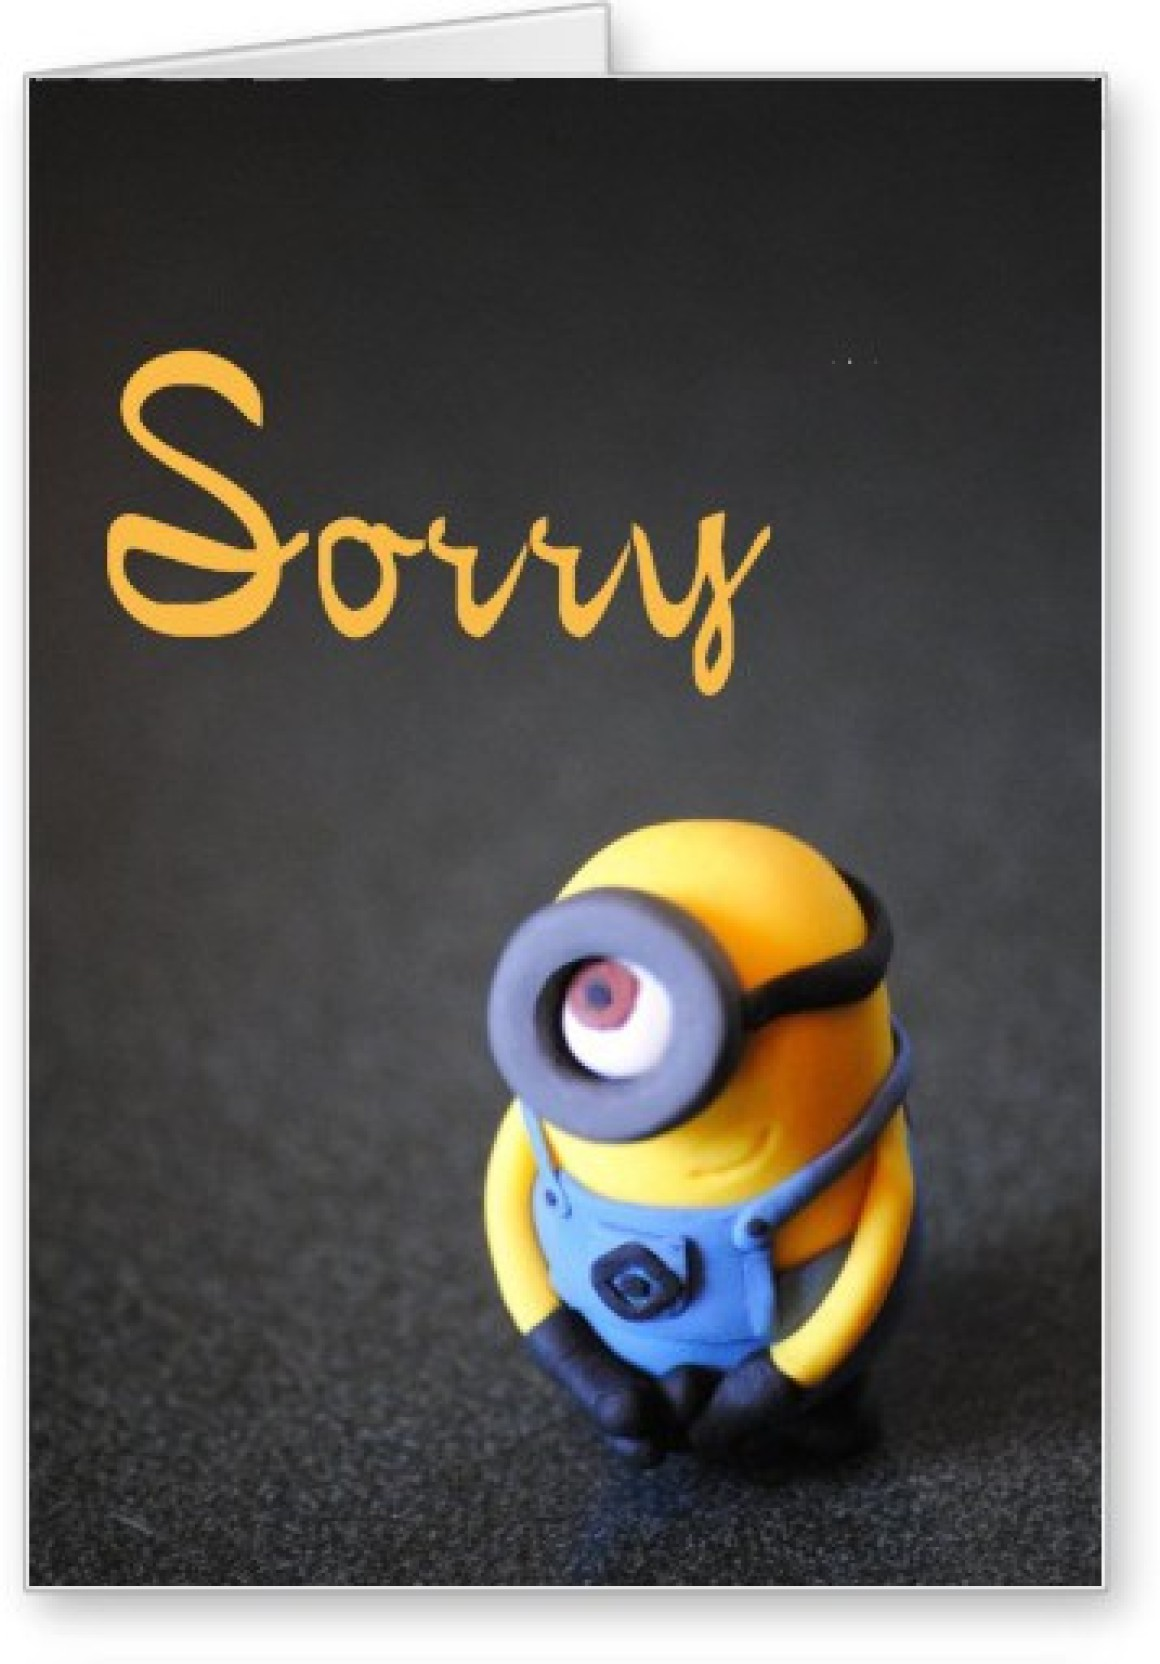 Lolprint Minion Sorry Greeting Card Price in India - Buy ...